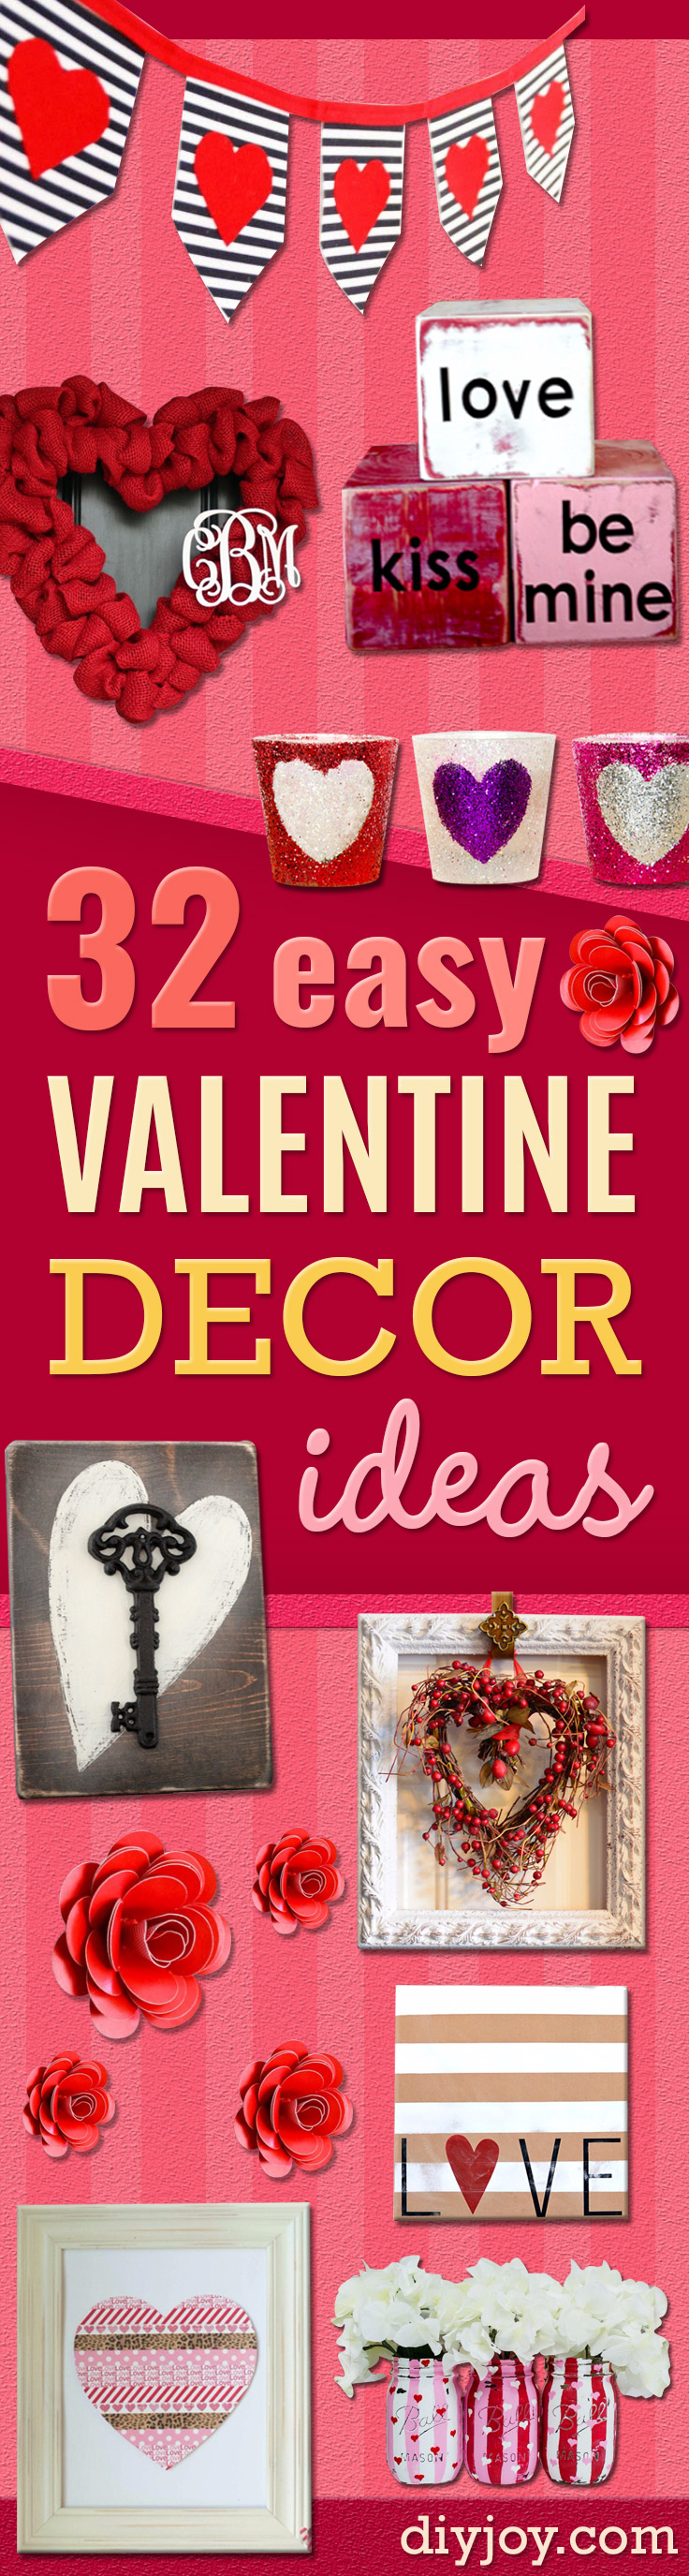 DIY Valentine Decor Ideas   Cute And Easy Home Decor Projects For Valentines  Day Decorating